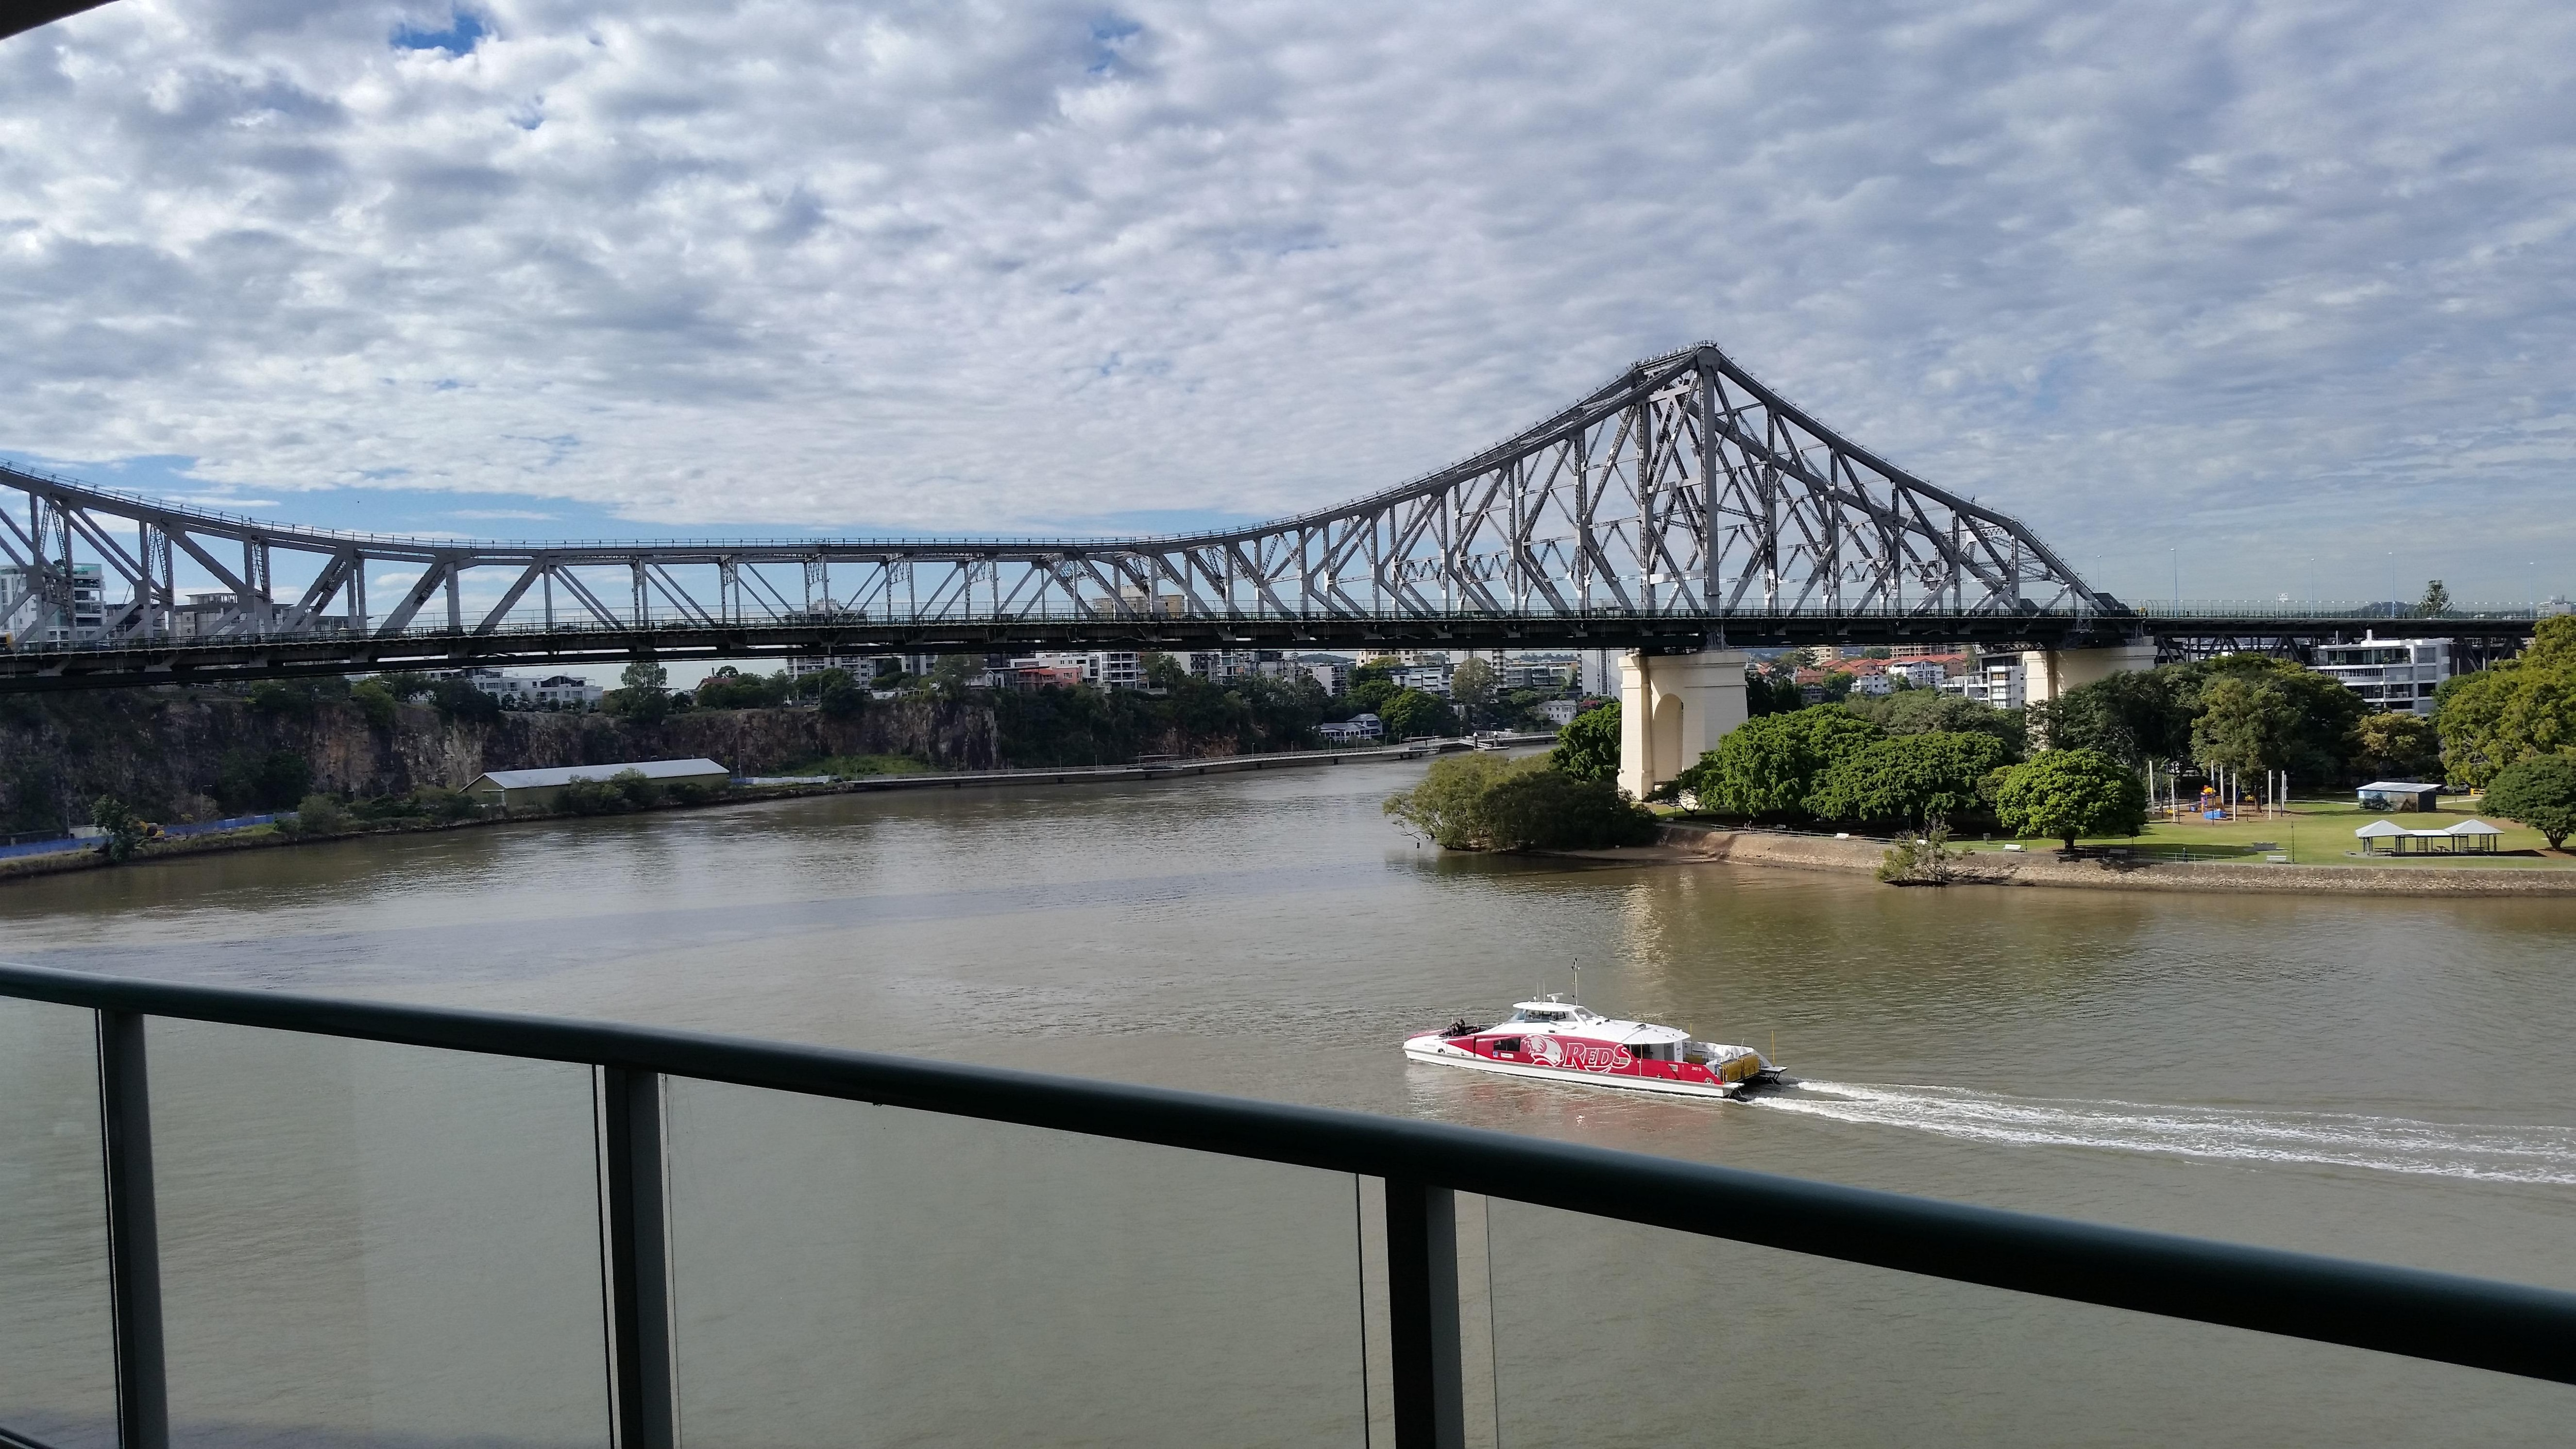 Story Bridge by day from our room